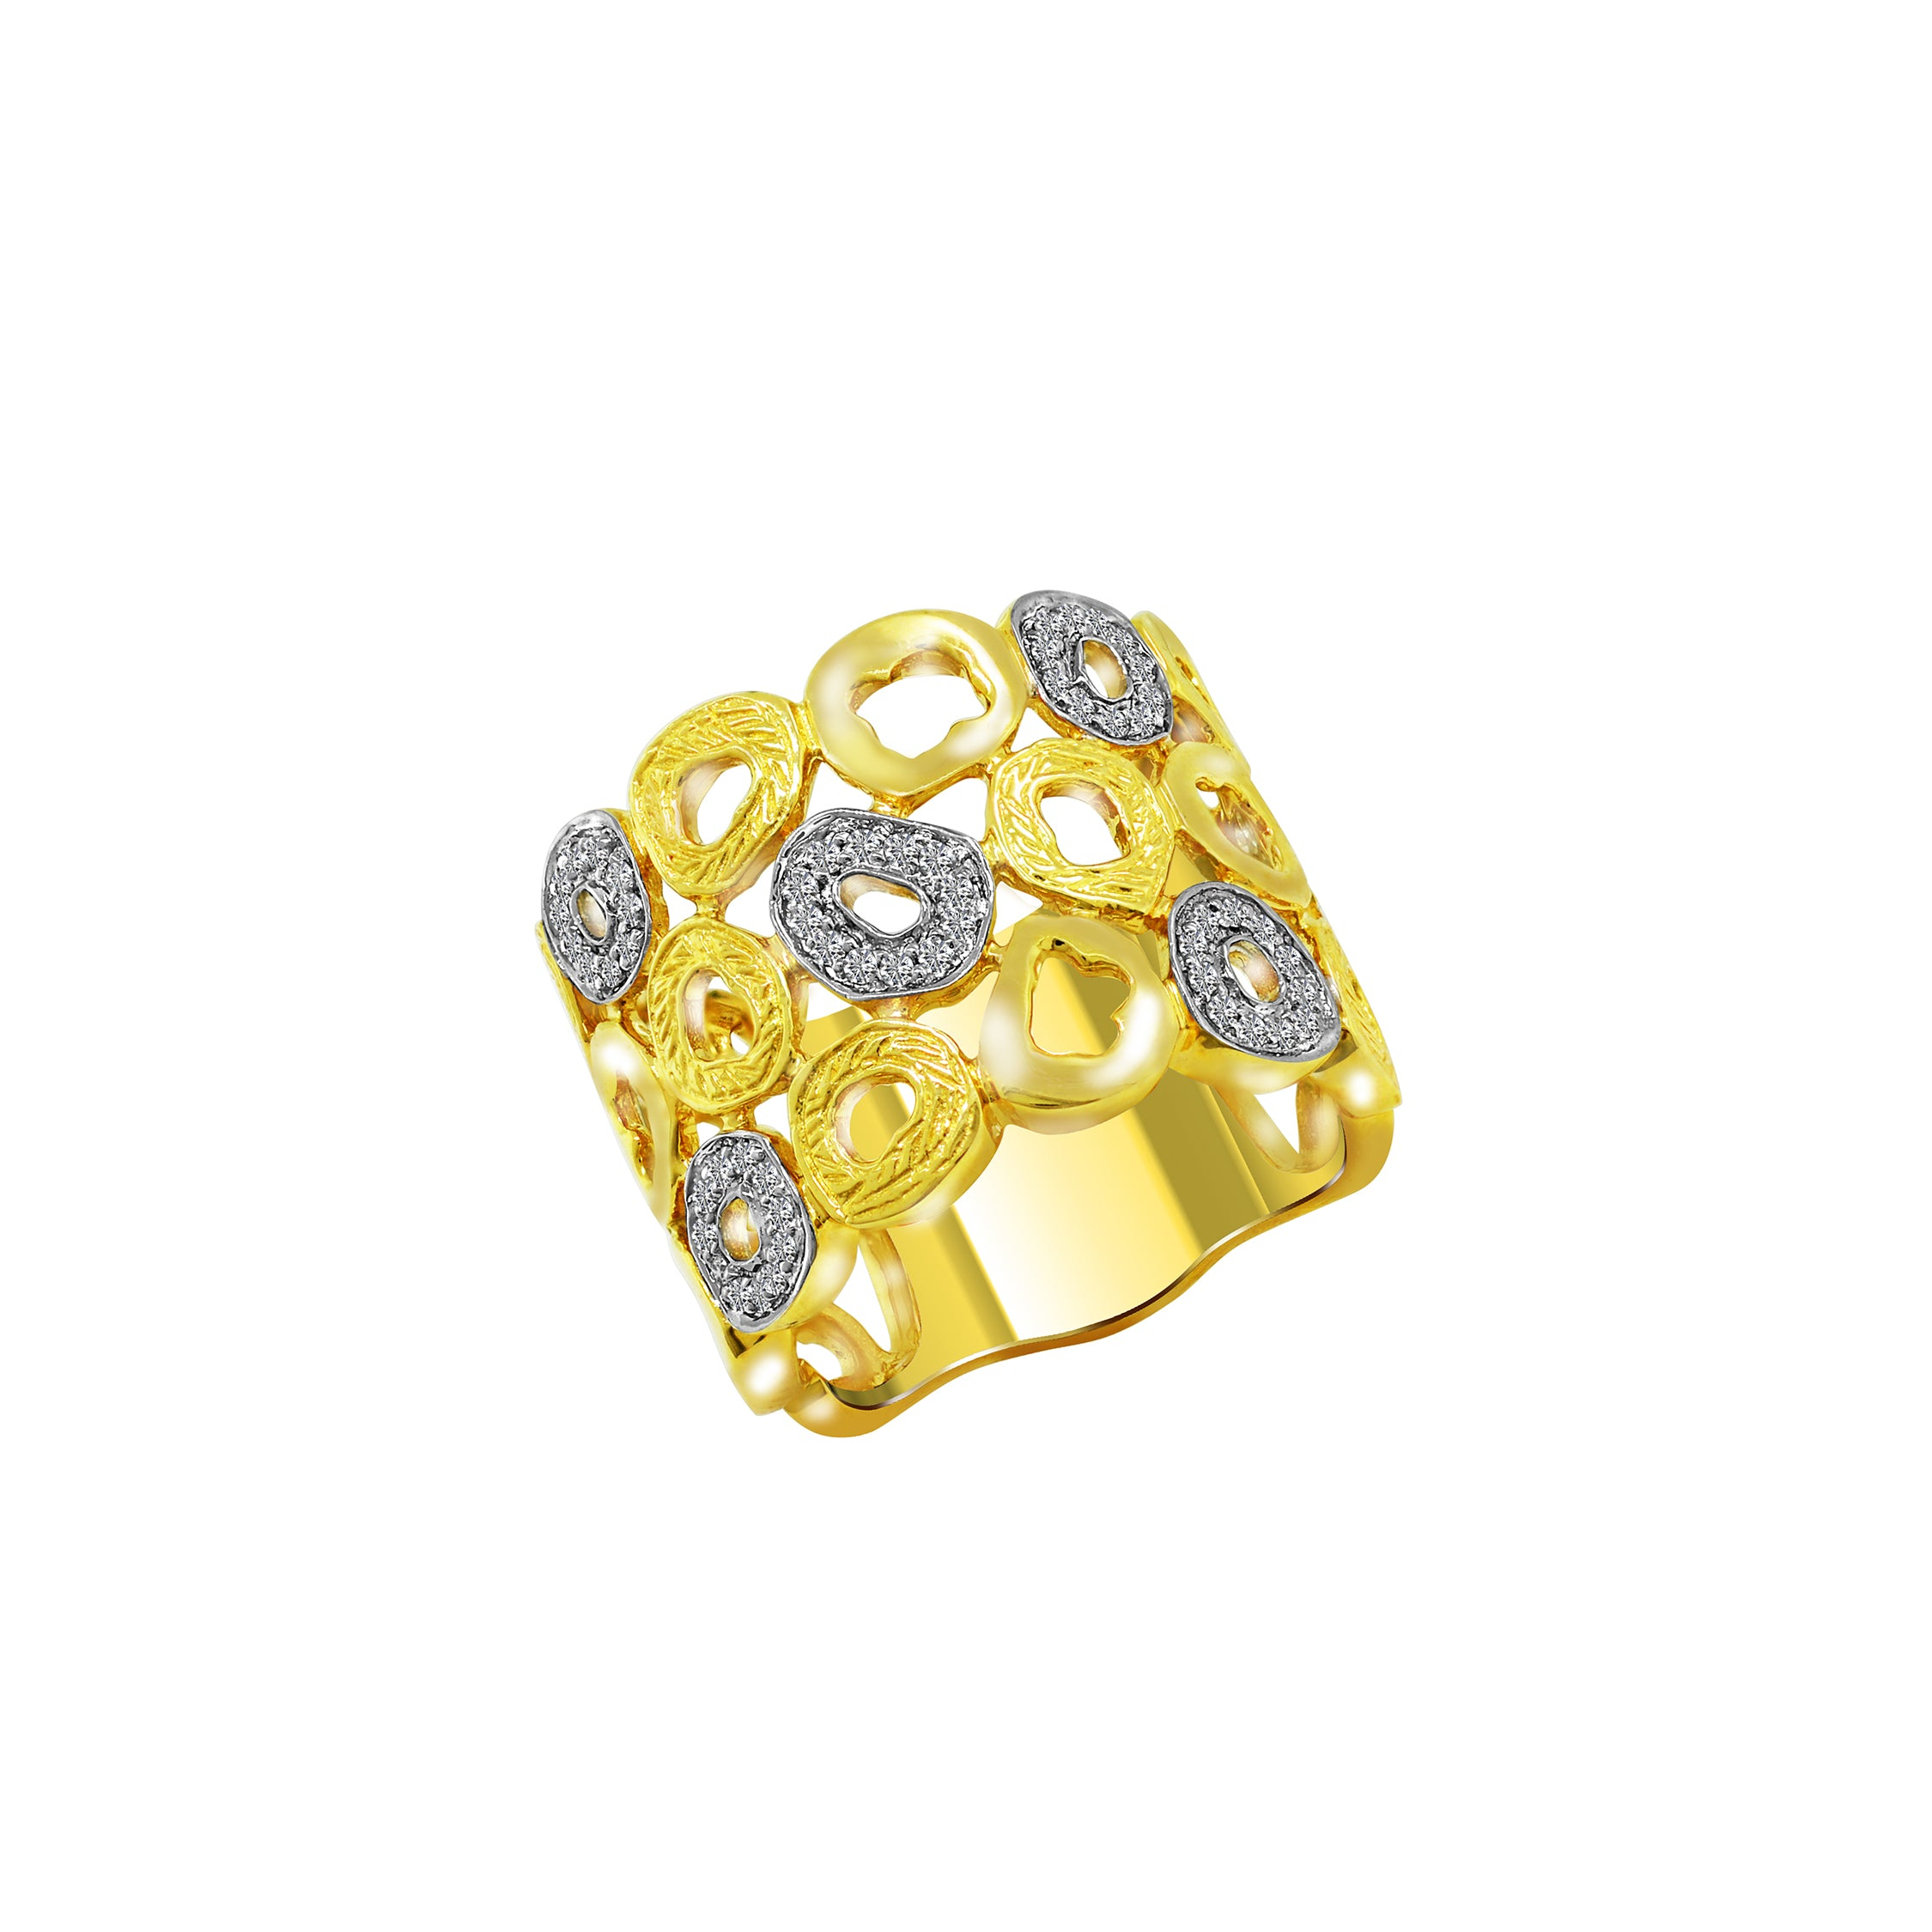 14K White and Yellow Gold with Diamond Ring, Rings, Nazar's & Co. - Nazar's & Co.